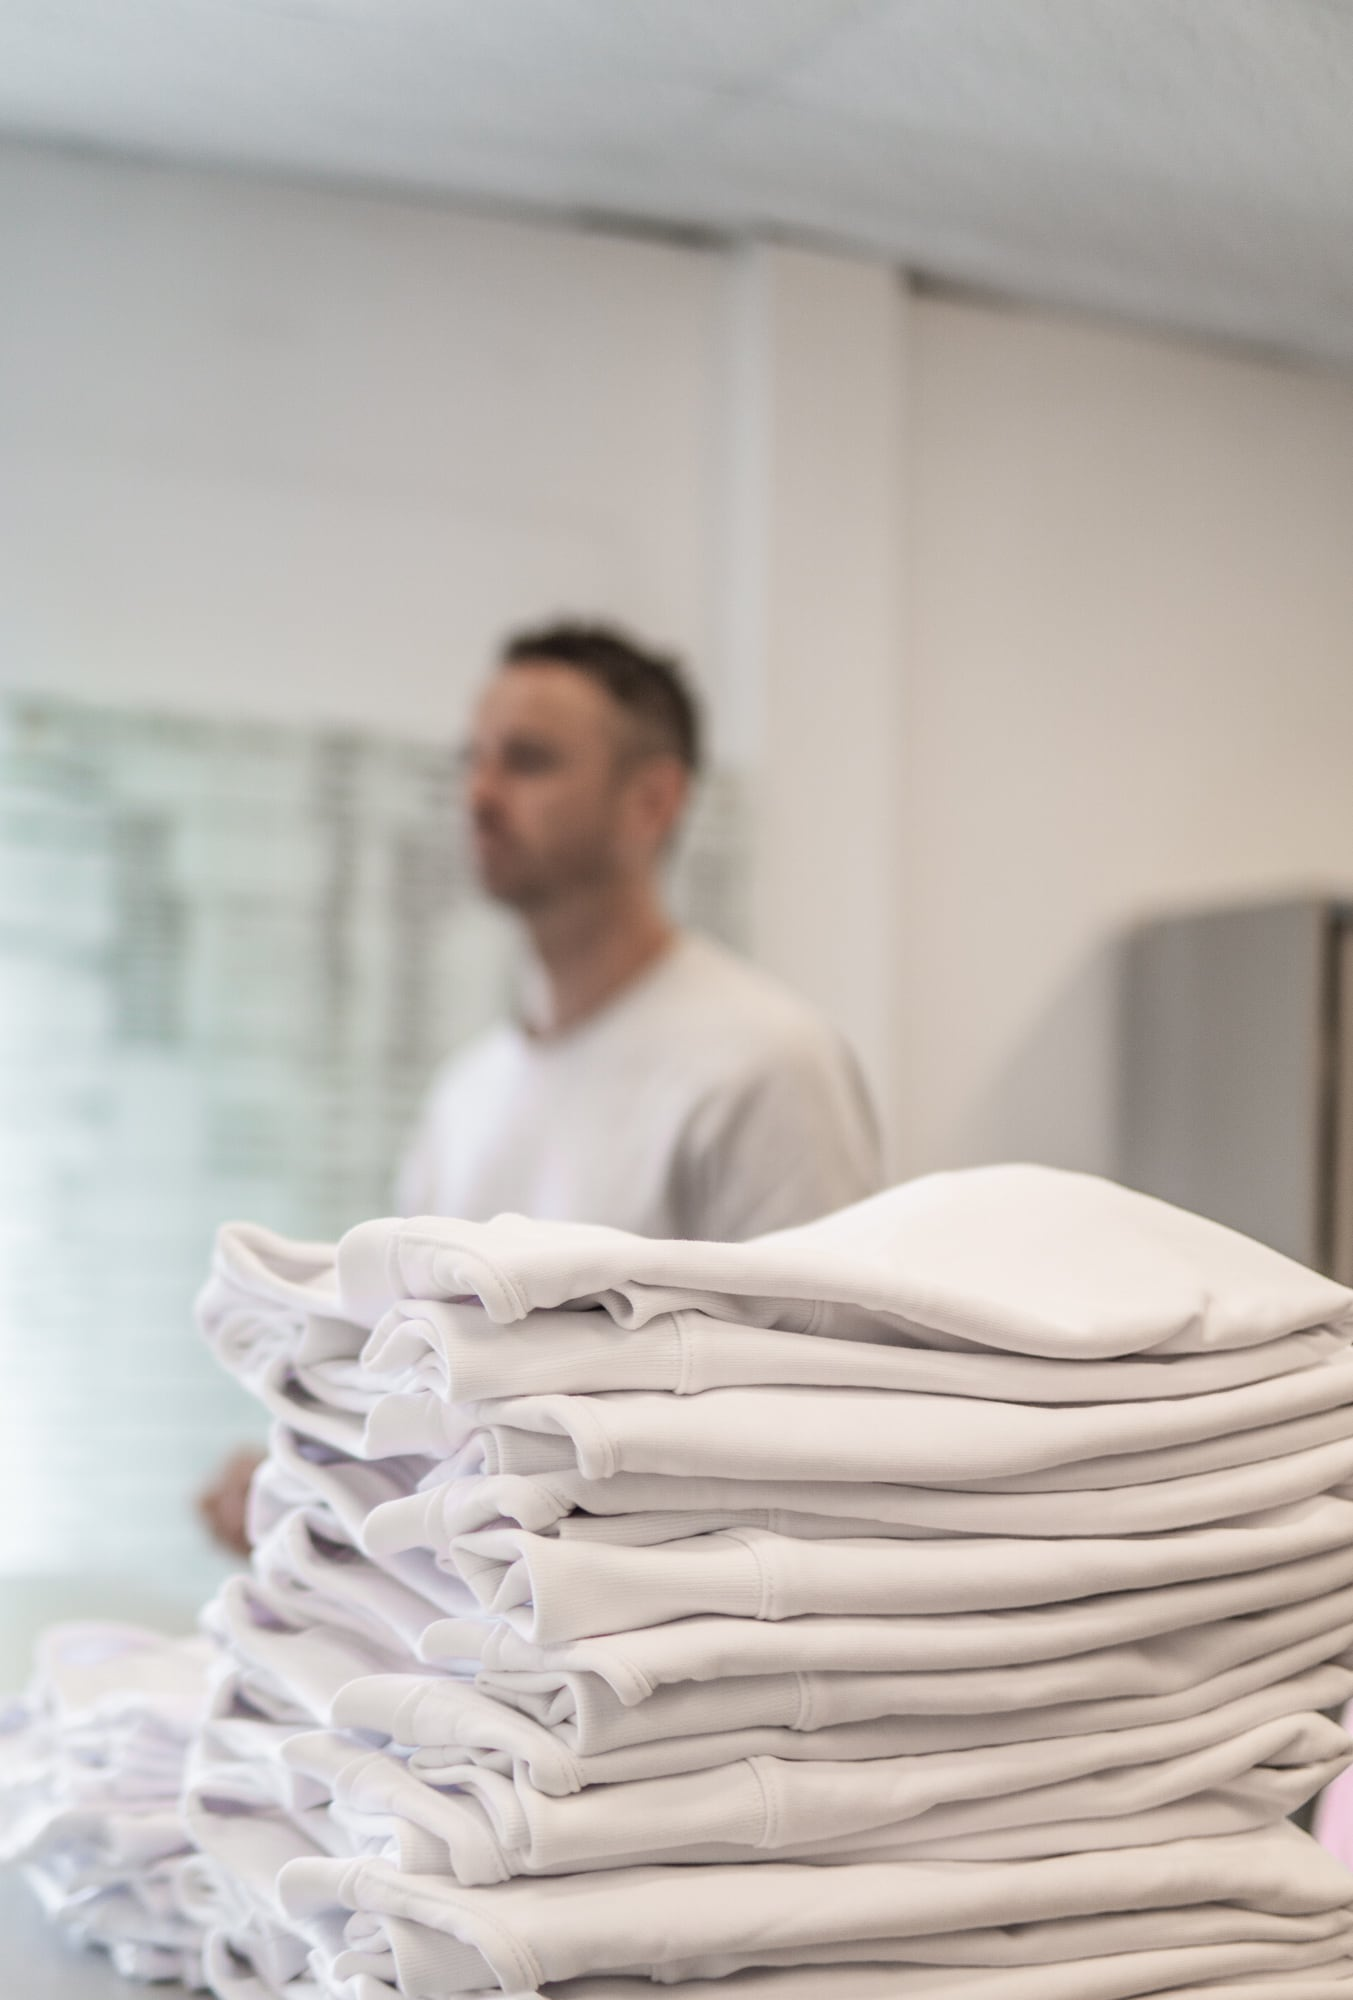 How I Manage: Un-Available's Paul Norriss On Producing Garments For Streetwear Brands-1